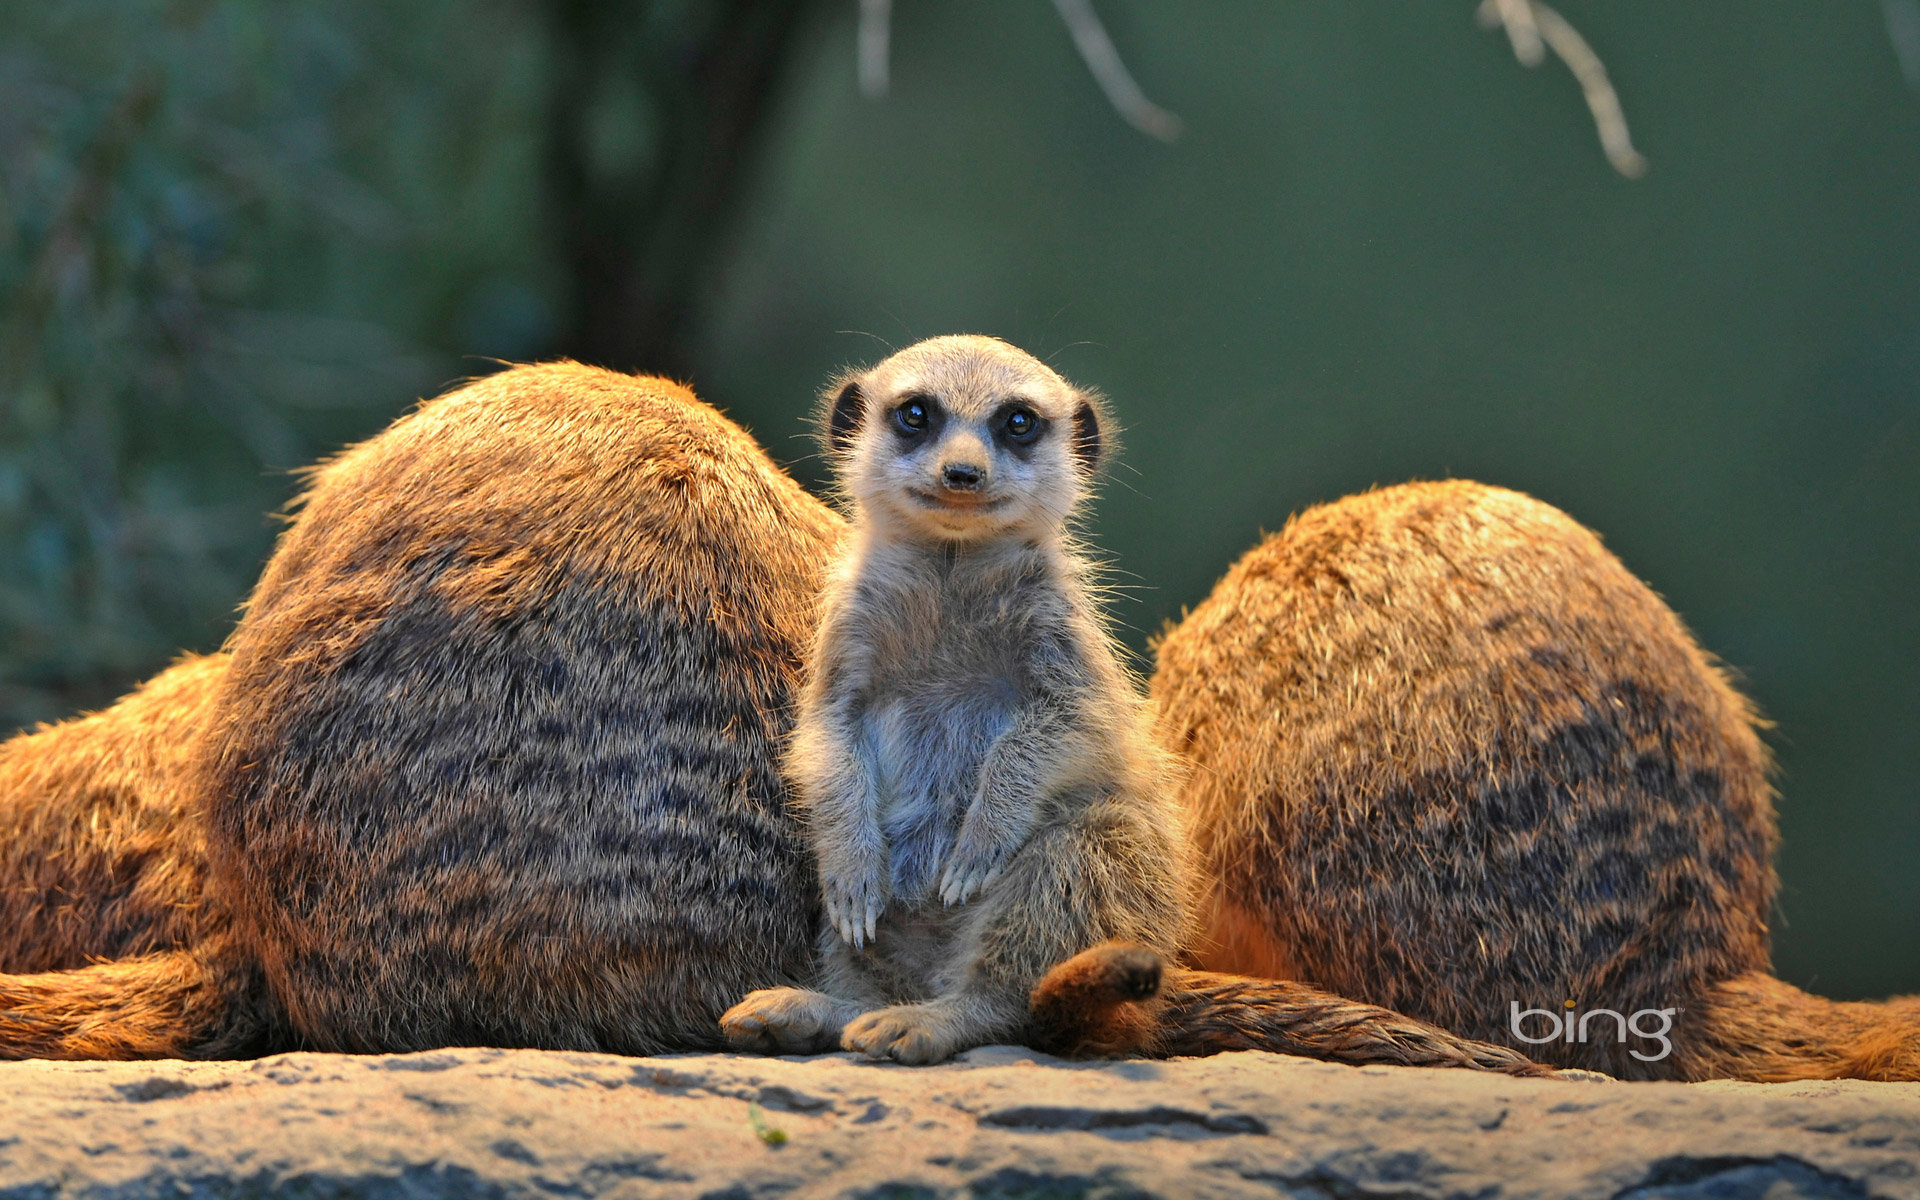 Download hd 1920x1200 Meerkat PC background ID:164545 for free